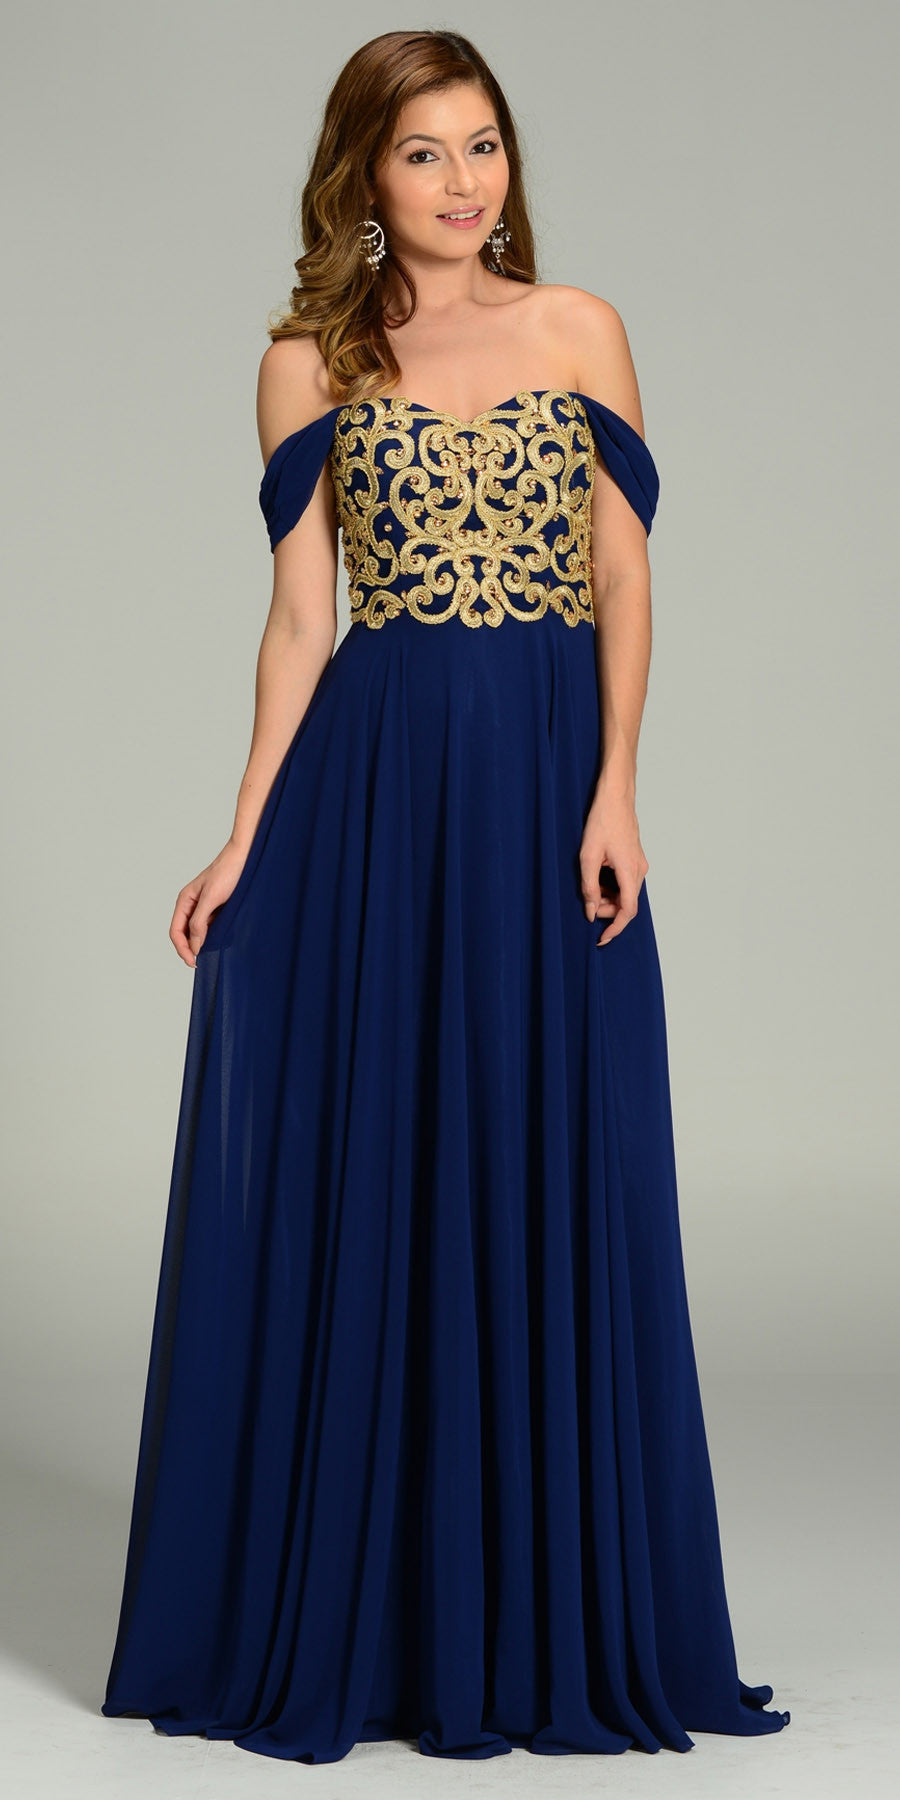 bc63a652de8f Full Length Chiffon Spanish Style Navy Gold Dress Off Shoulder Lace  Applique. Tap to expand